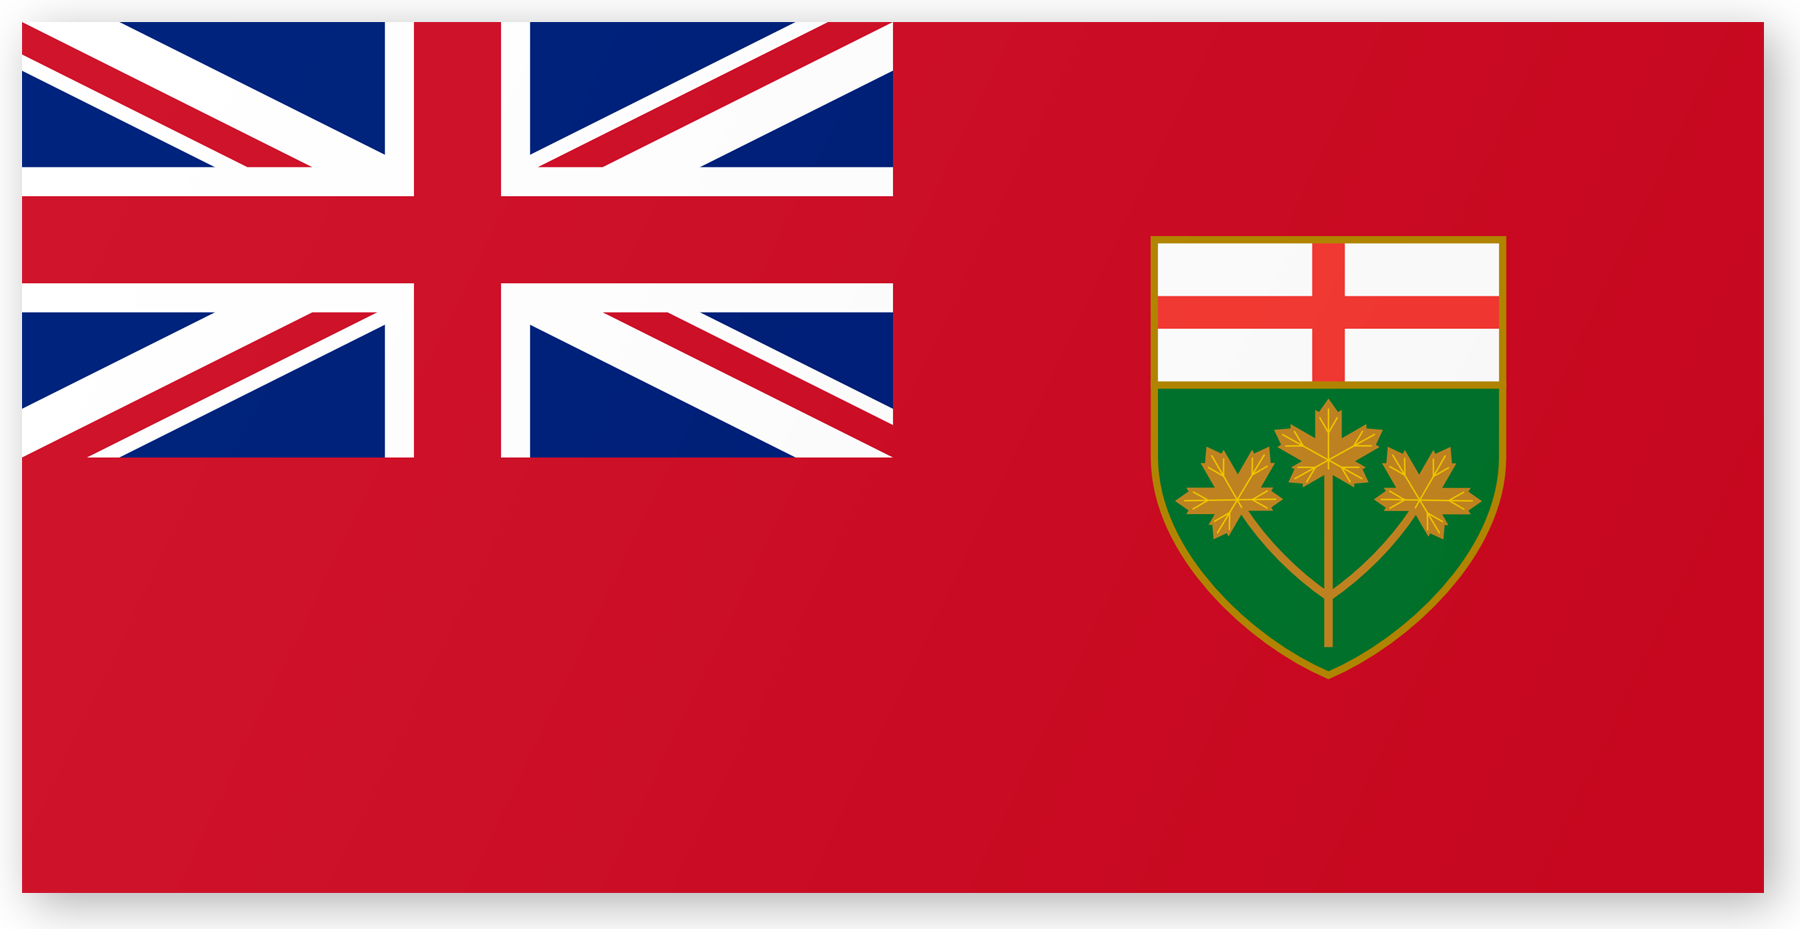 small business grants in ontario